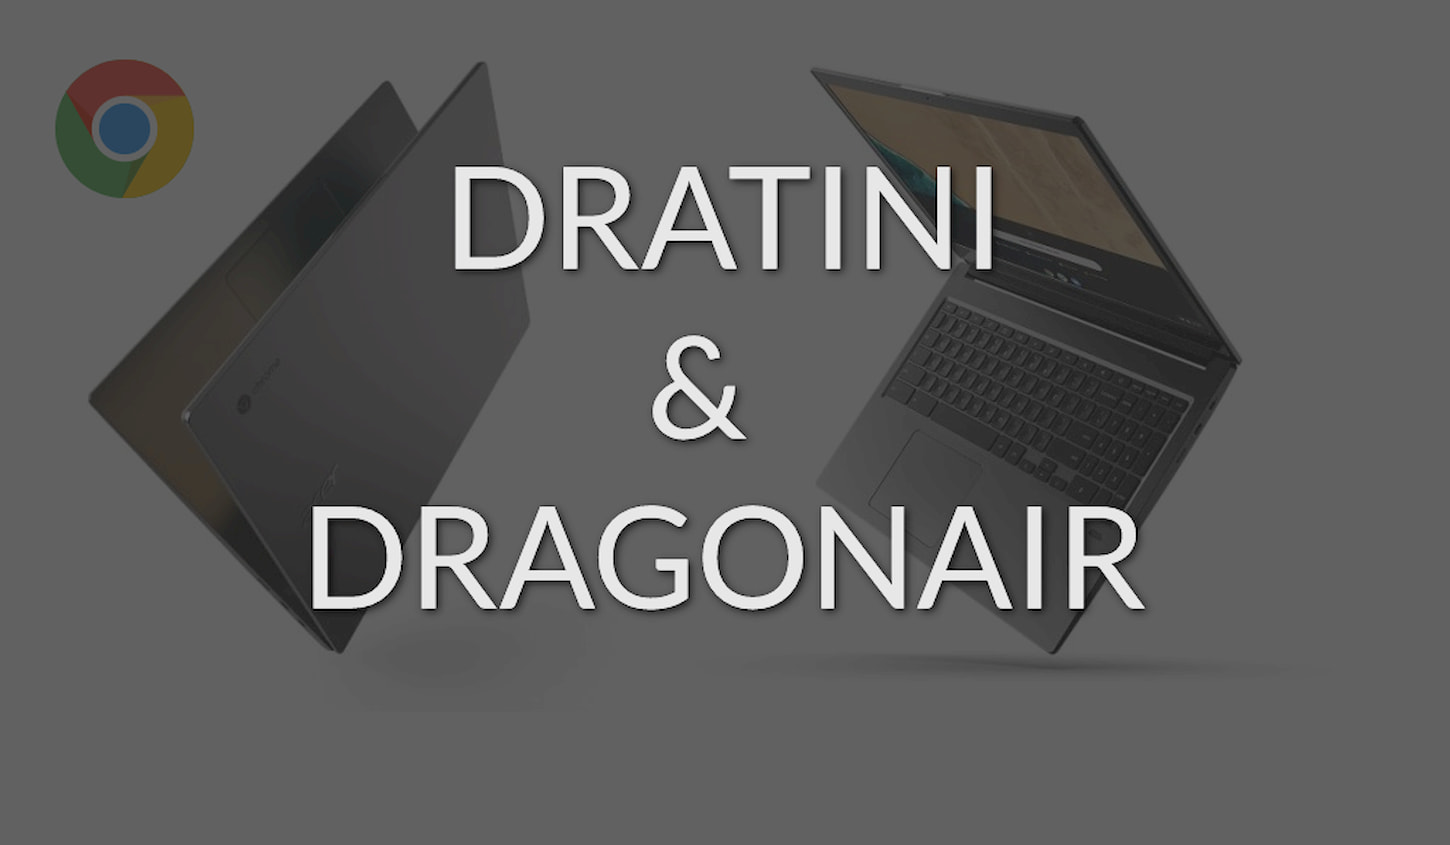 Dratini & Dragonair: Six new Comet Lake Chromebooks in the works